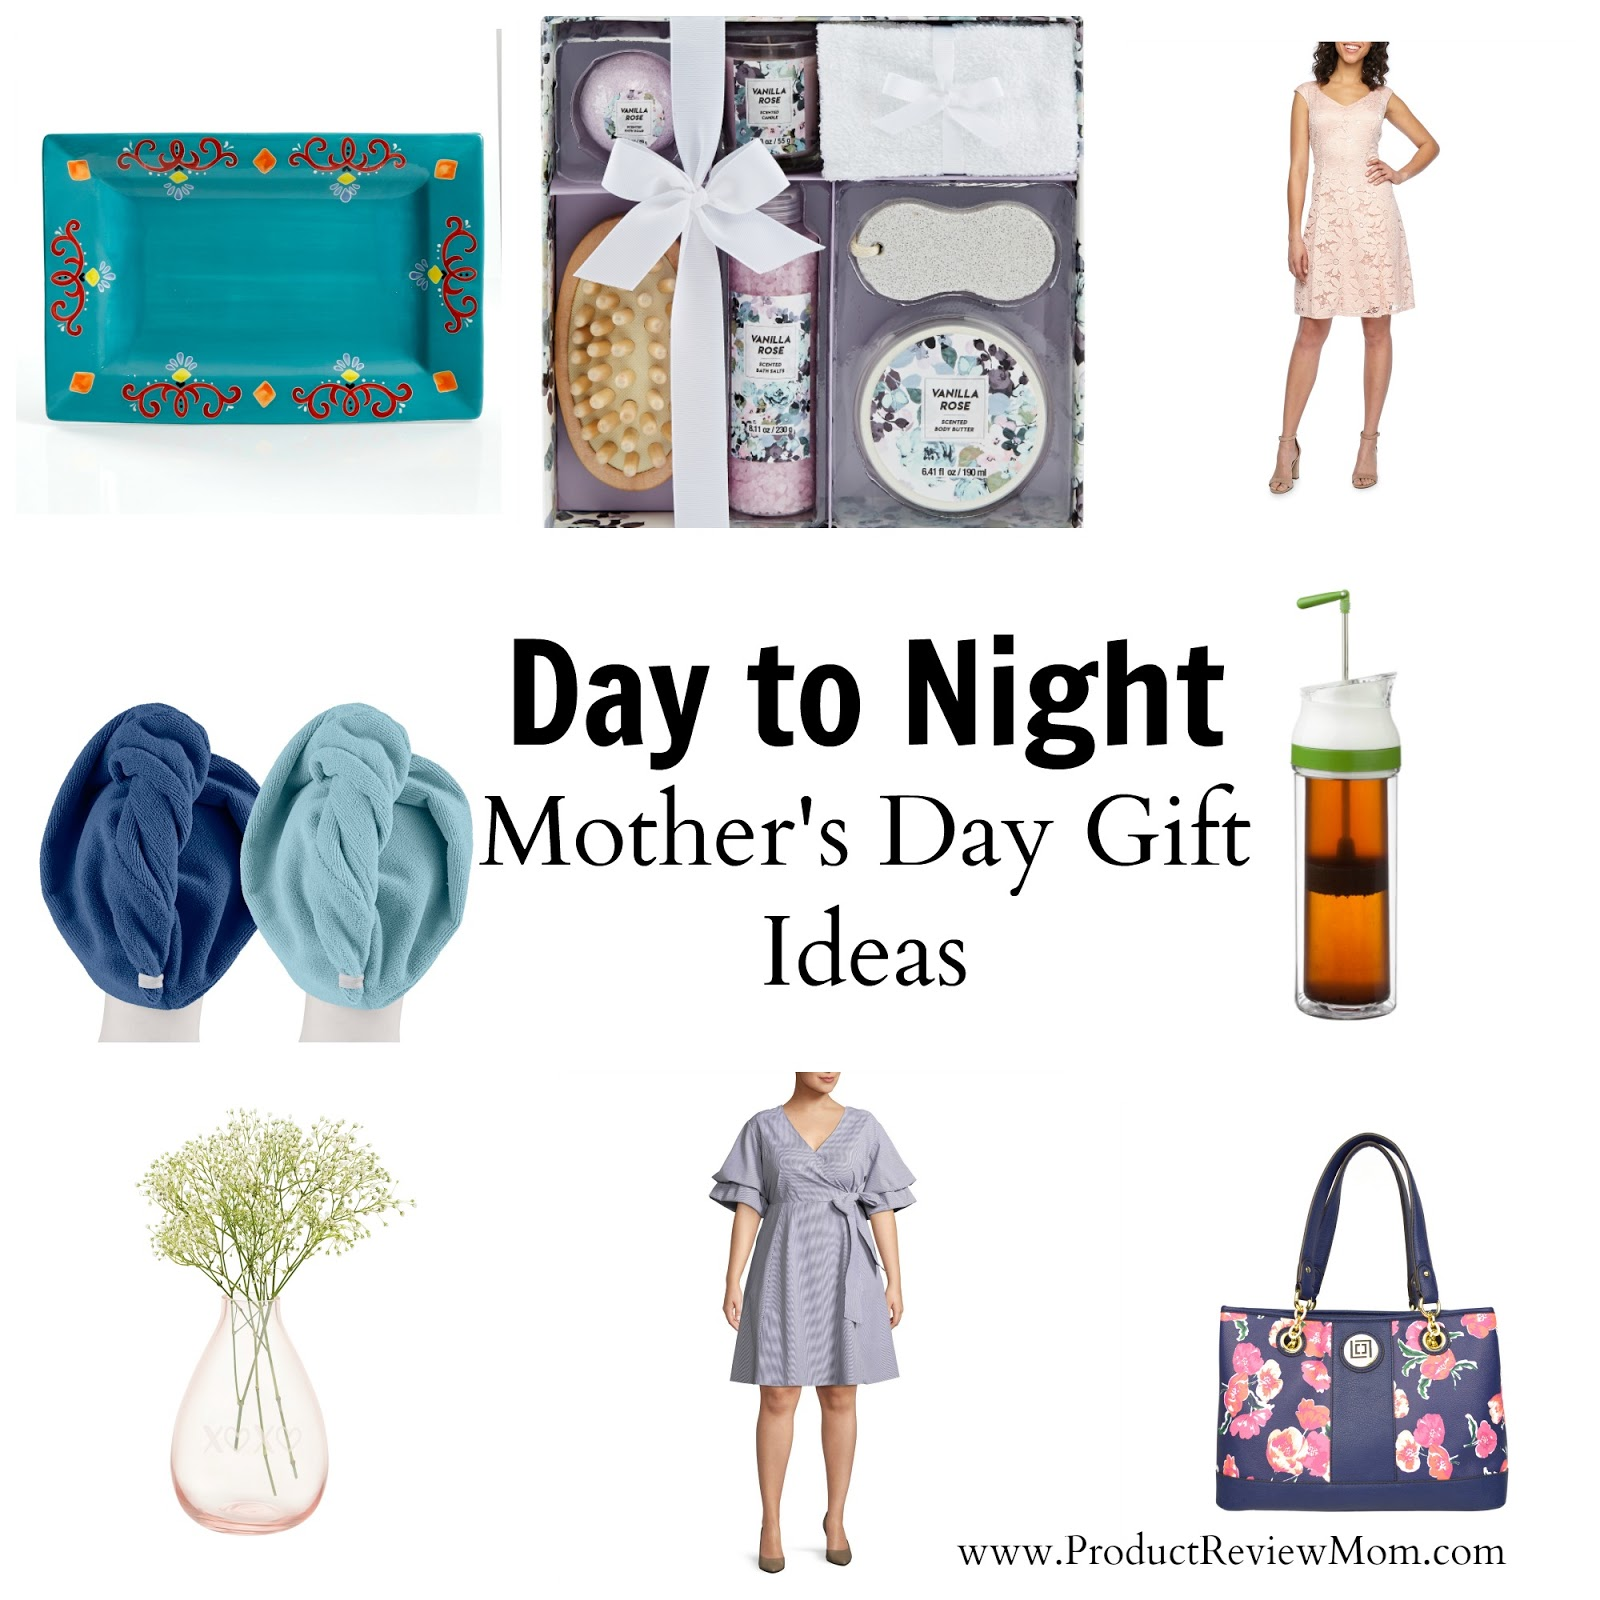 Day to Night Mother's Day Gift Ideas  via  www.productreviewmom.com